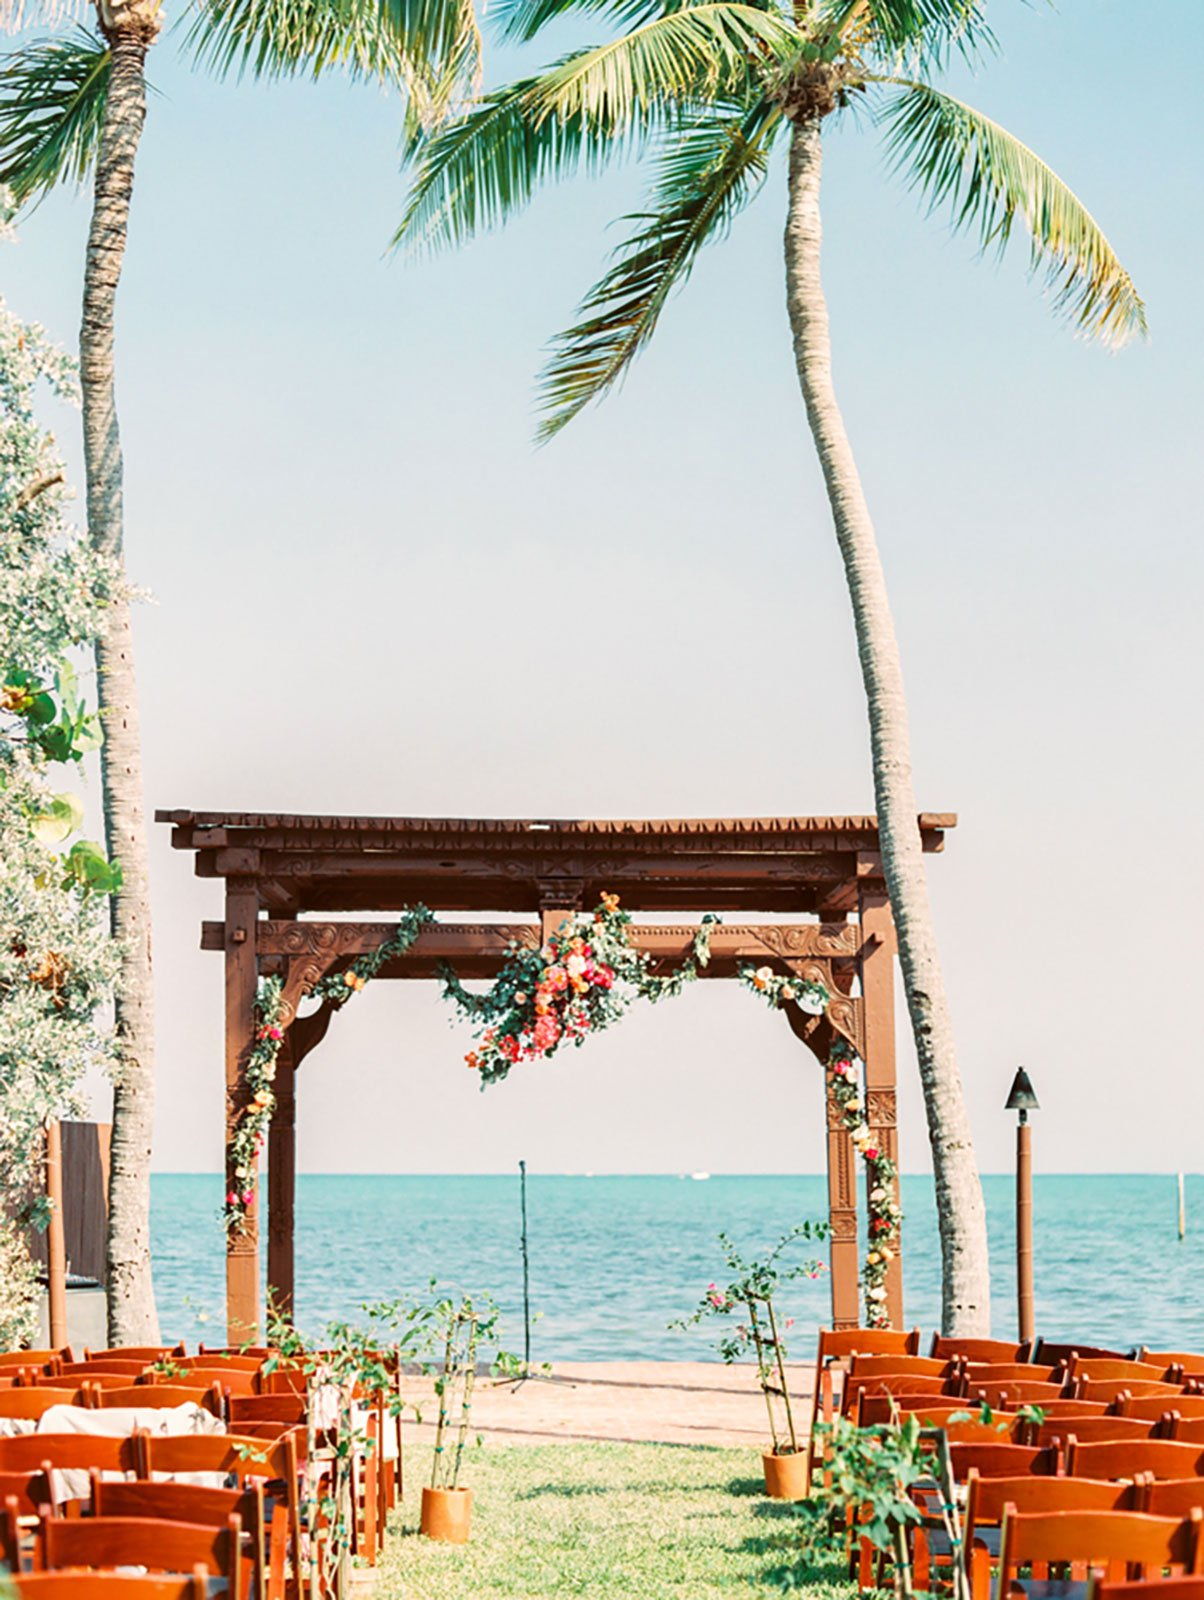 Terra-cotta pots of bougainvillea, succulents and greenery served as aisle decor at his waterfront wedding ceremony at the Caribbean Resort in Islamorada, FL